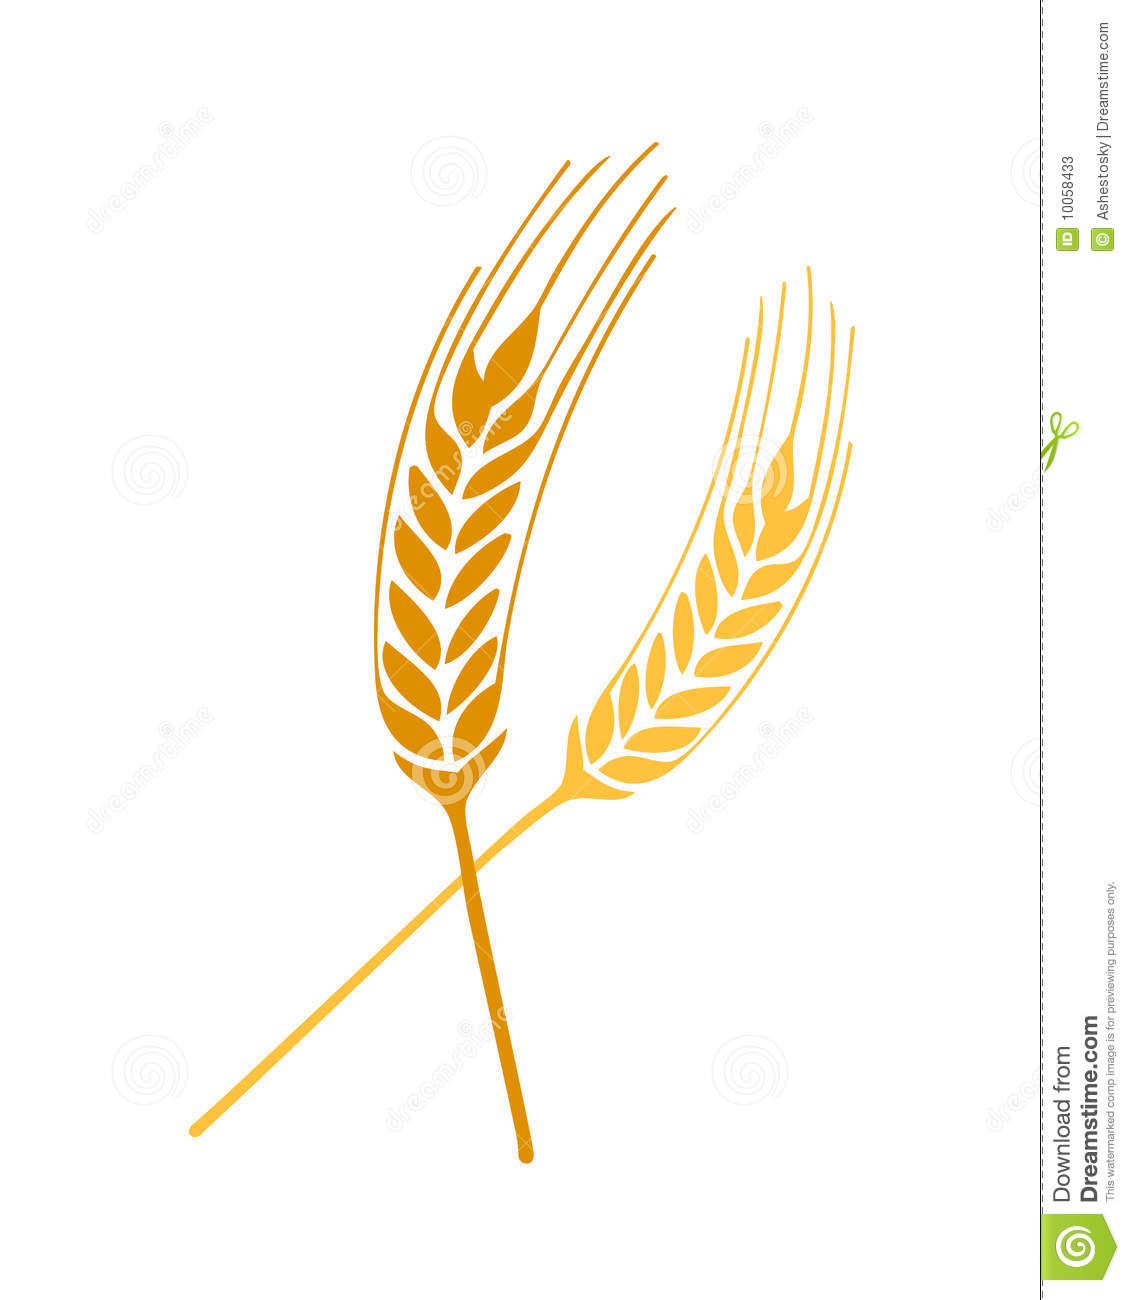 More similar stock images of ` Wheat springs vector `